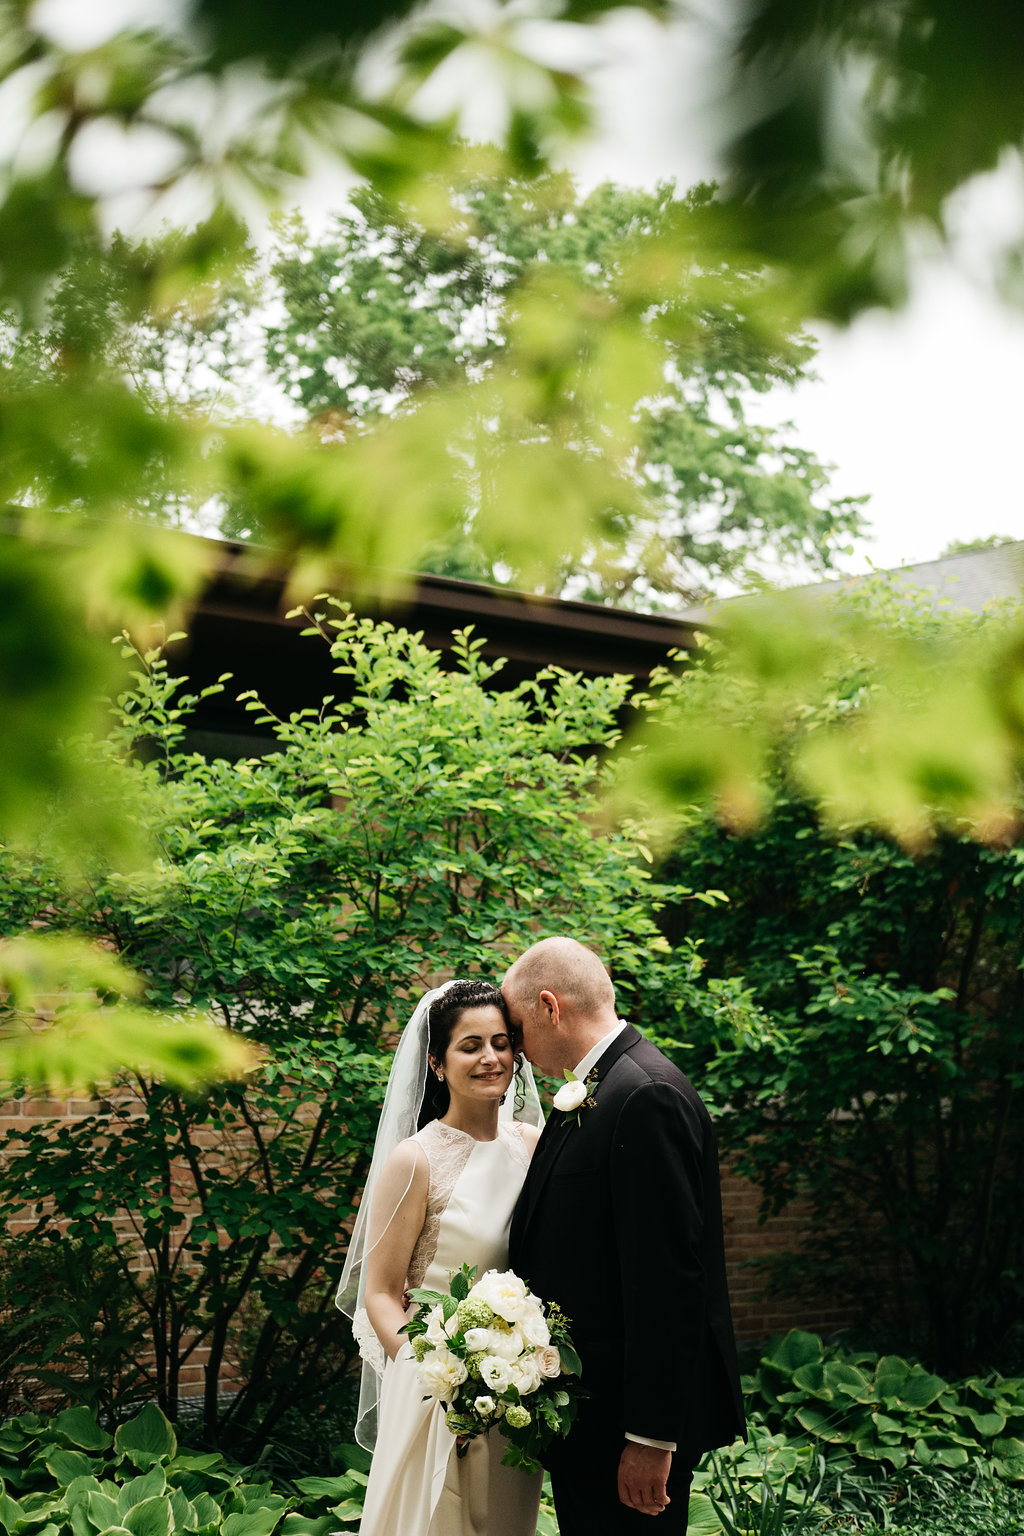 Lisa+Geoffrey_Wedding-6.jpg